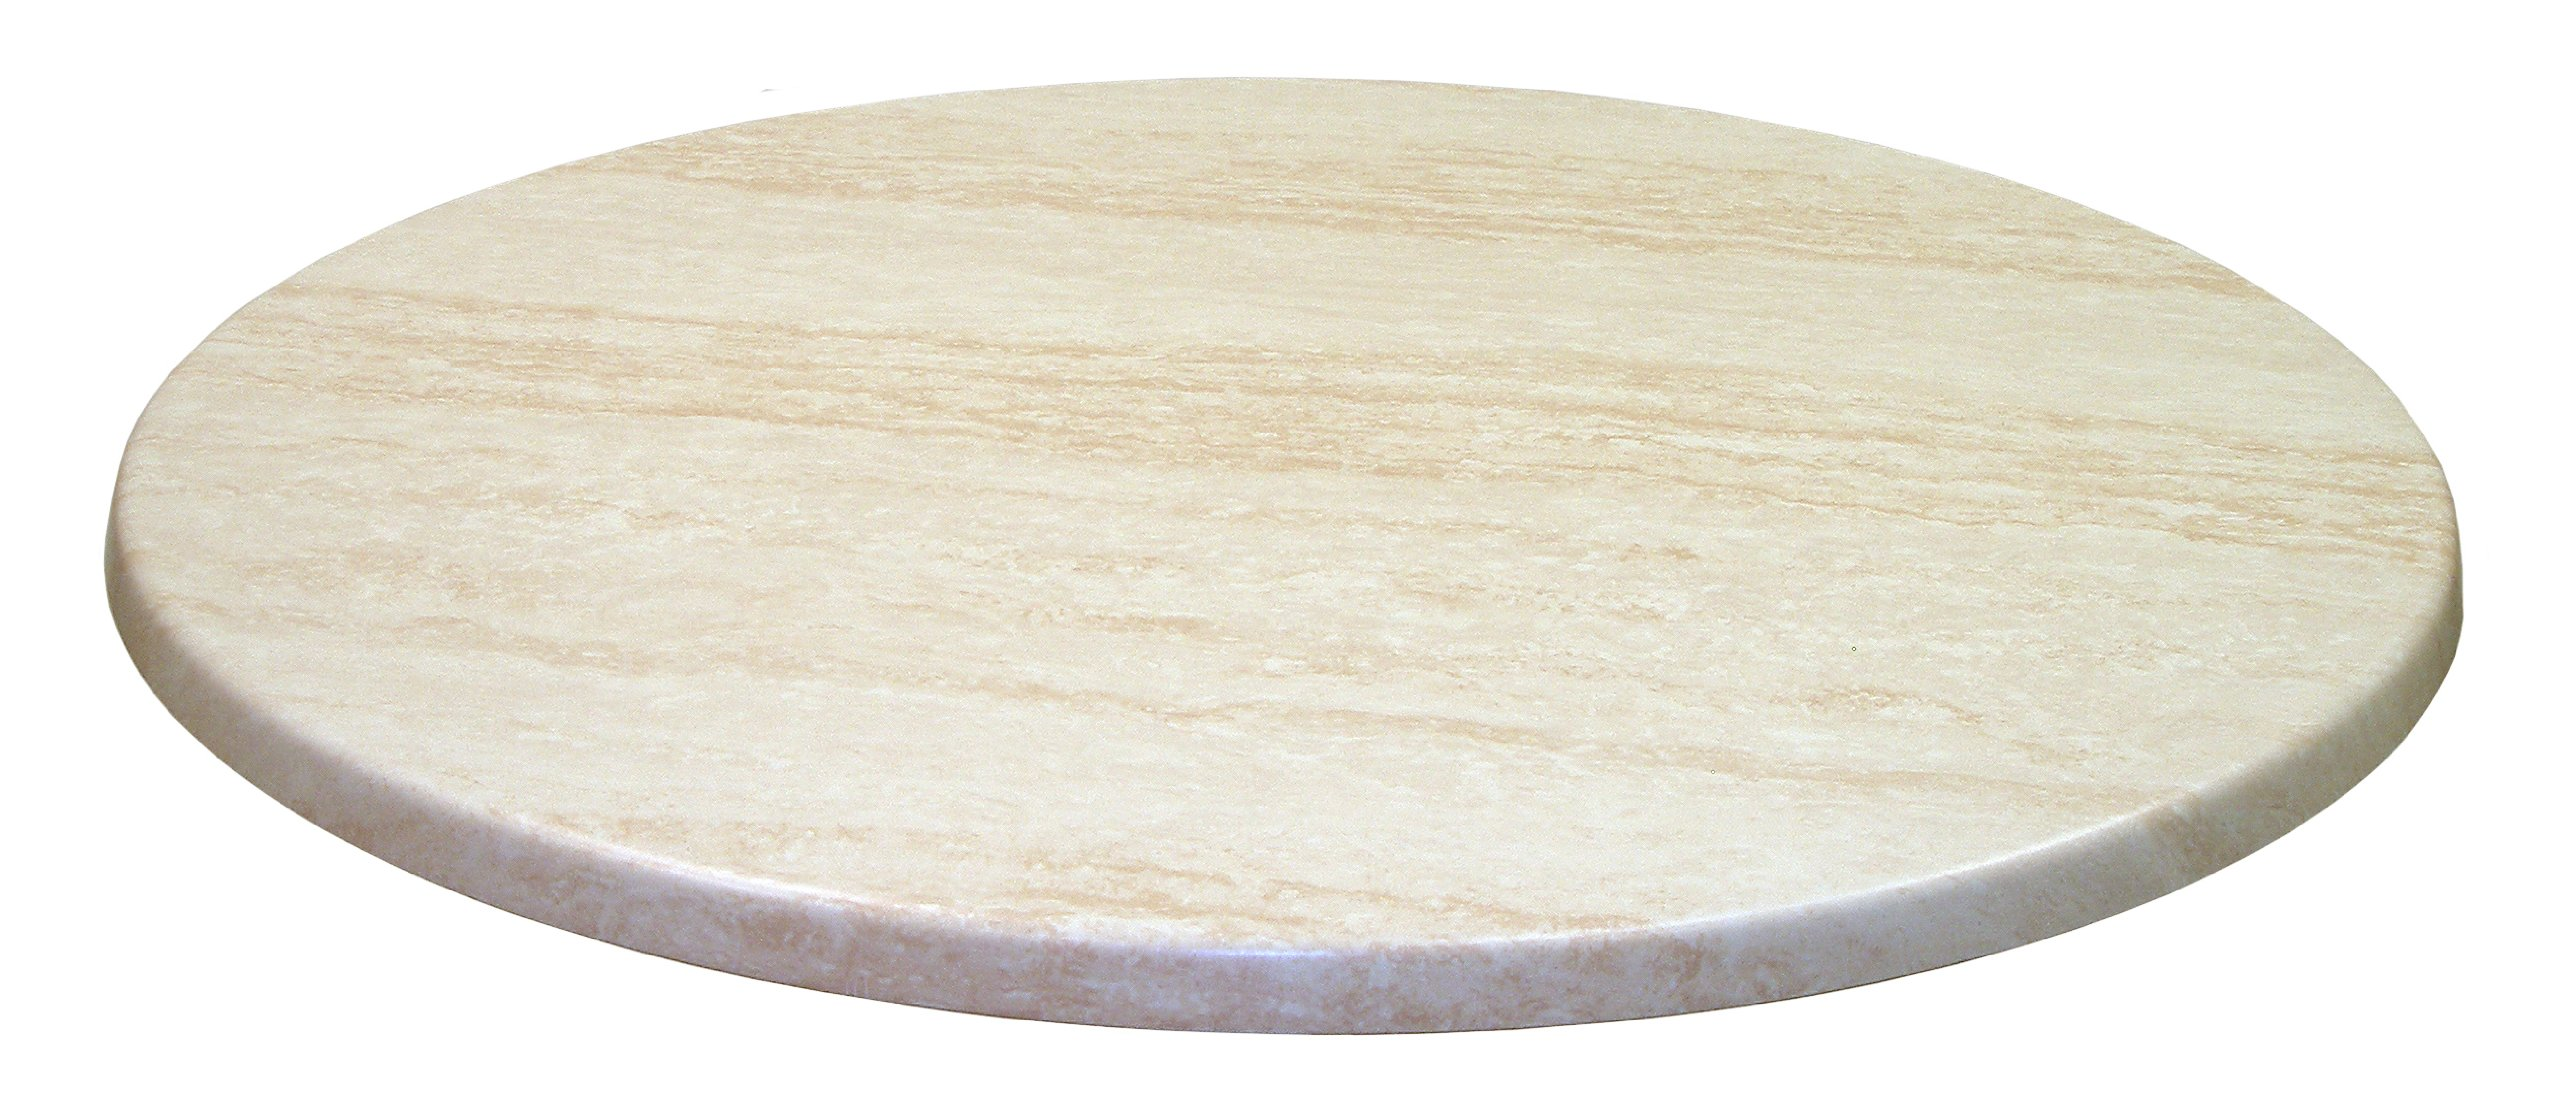 ATC Werzalit Stone-Look Table Top, 32'' D, Travertine (Pack of 2)